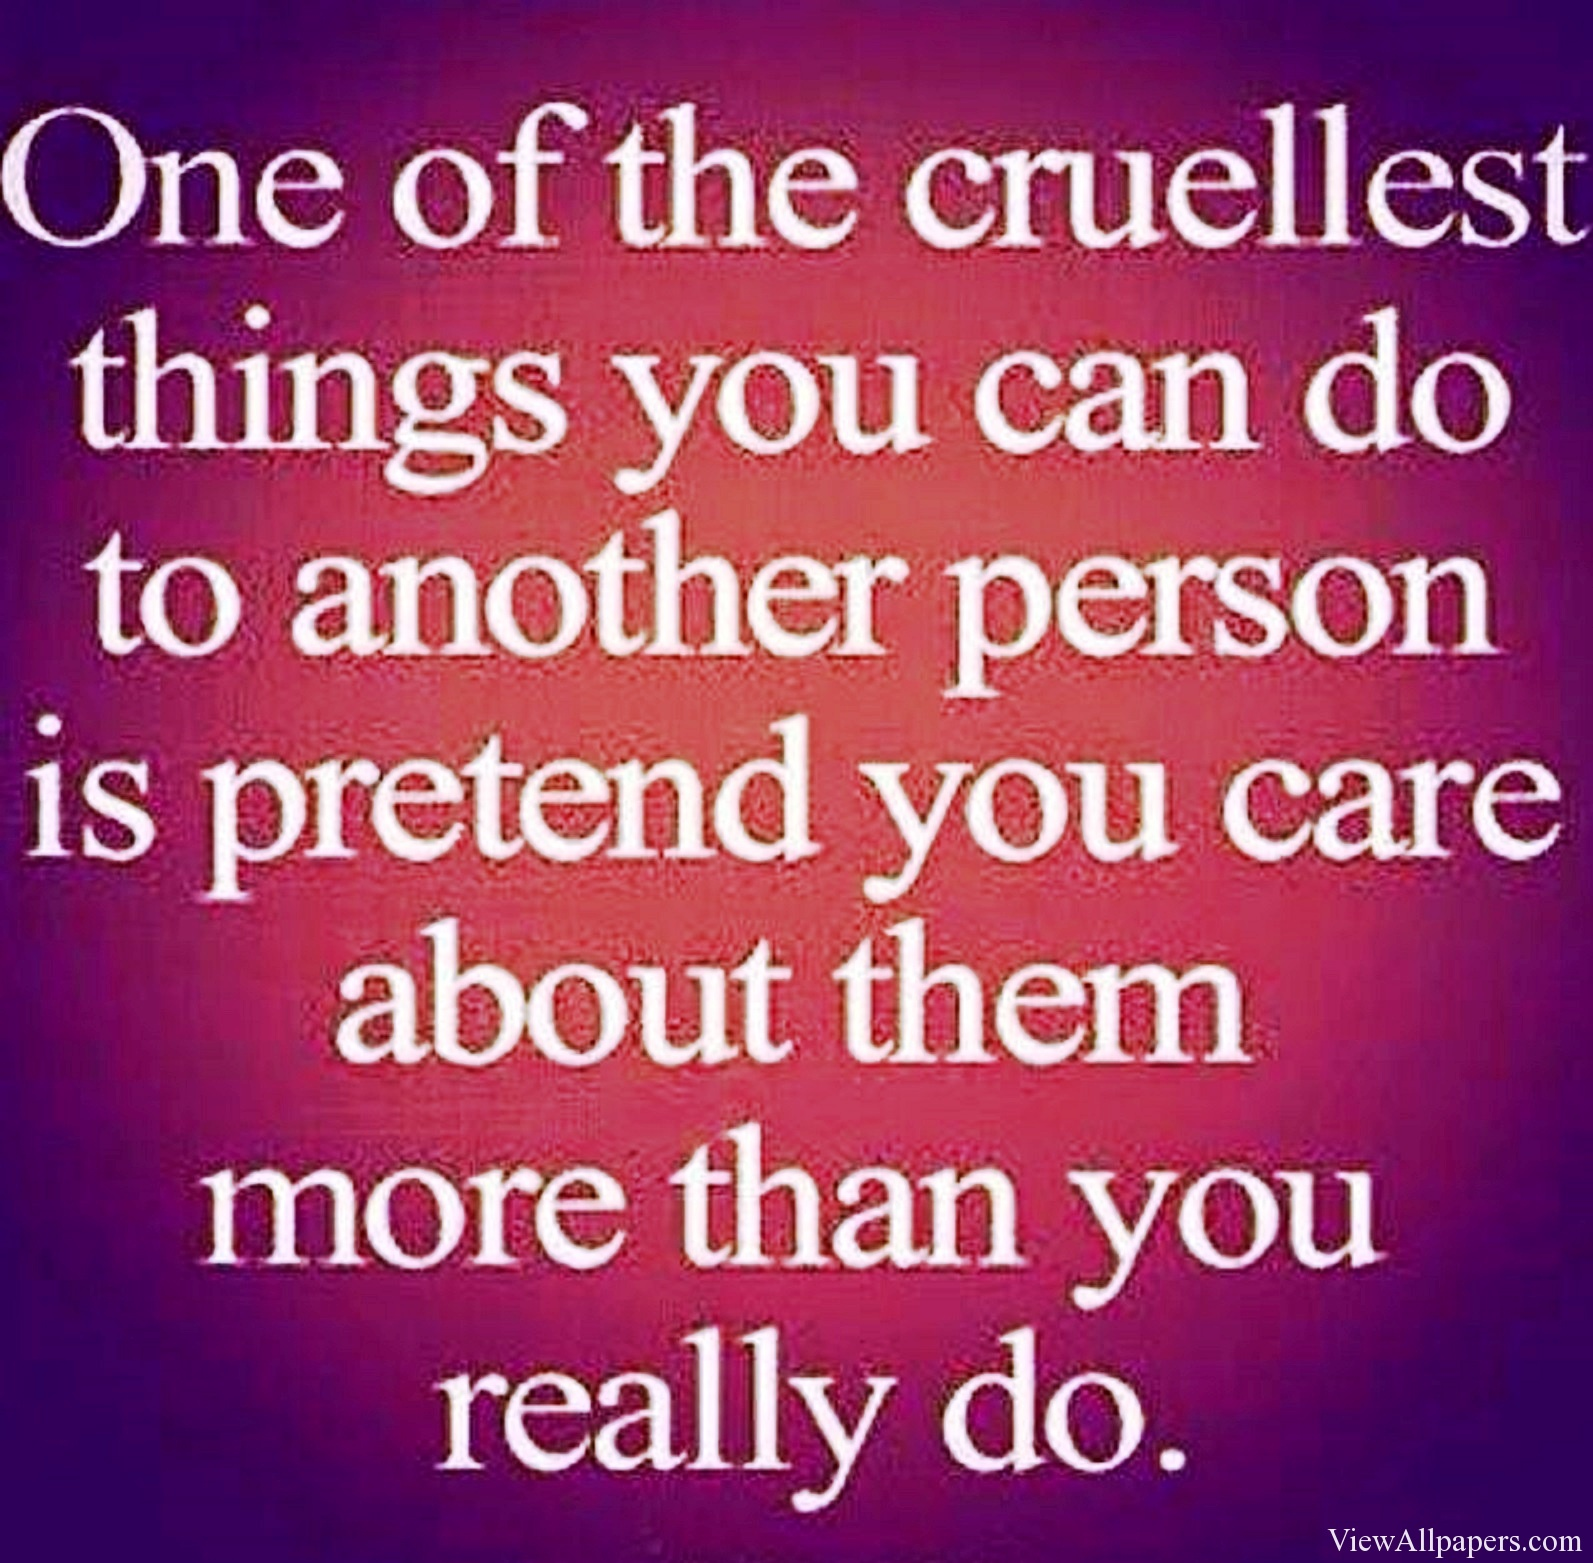 Quotes About Love: Cruel Love Quotes. QuotesGram